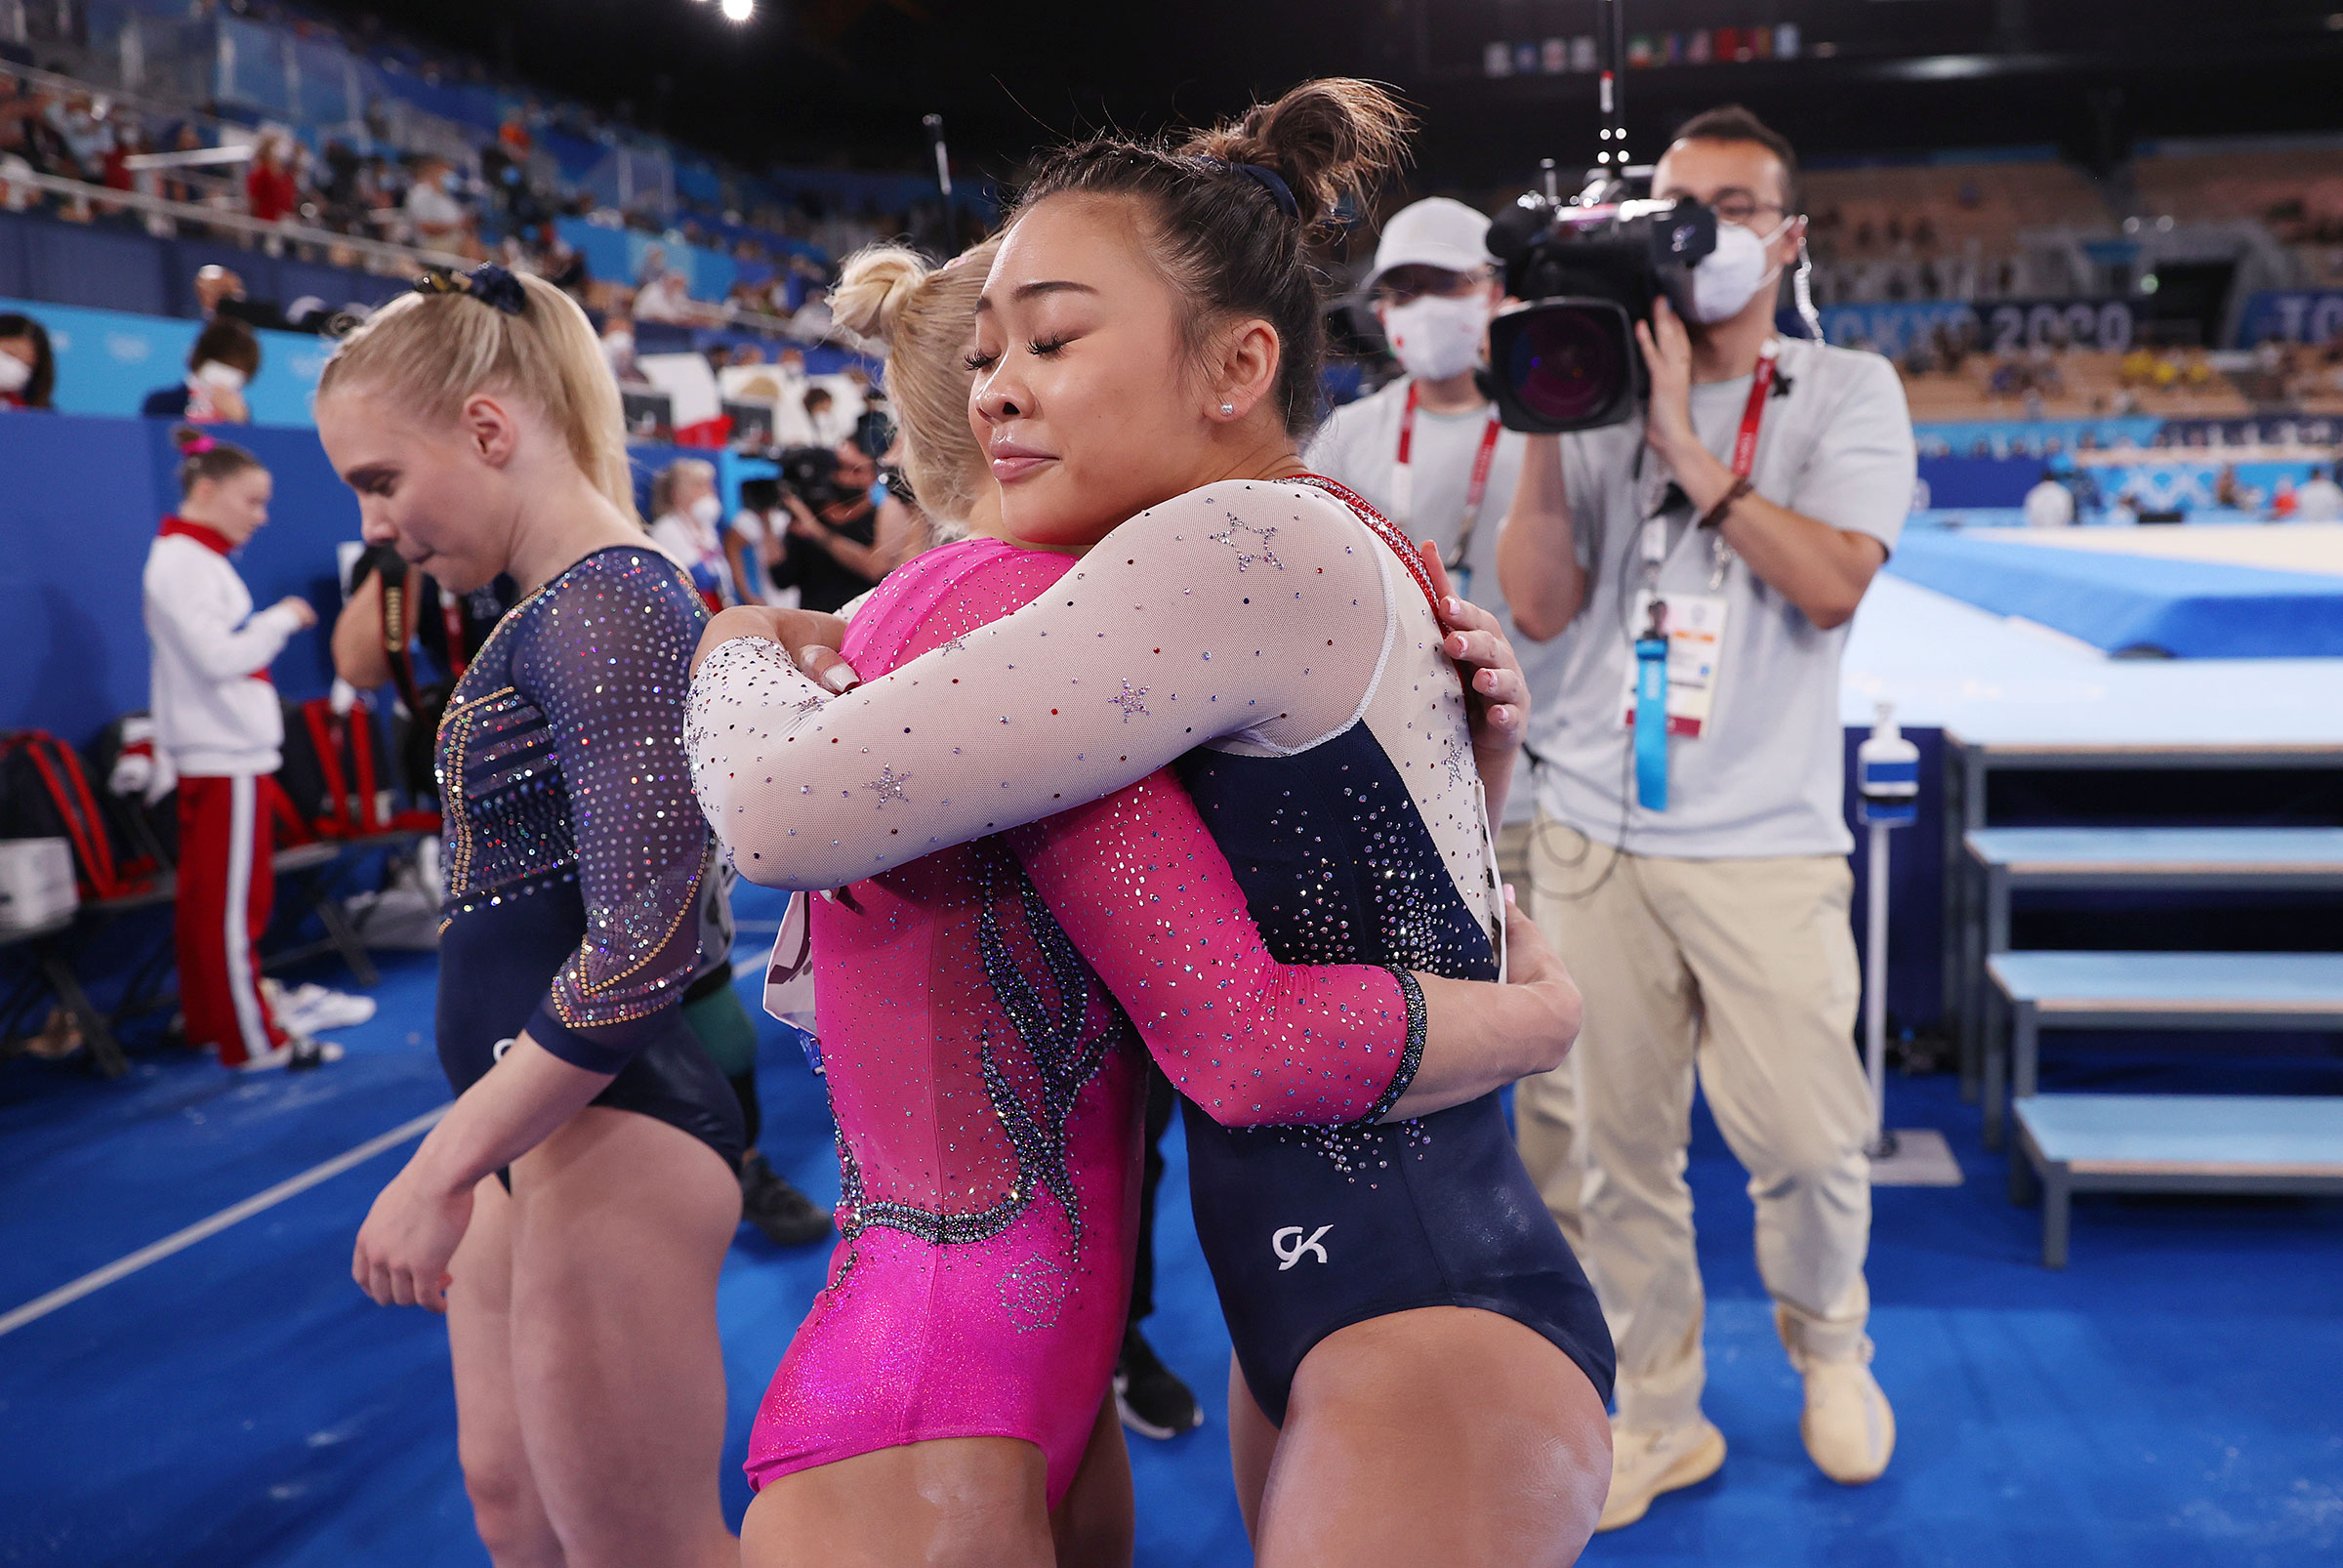 Sunisa Lee of Team United States hugs Angelina Melnikova of Team ROC during the Women's All-Around Final on day six of the Tokyo 2020 Olympic Games at Ariake Gymnastics Centre on July 29, 2021 in Tokyo, Japan.